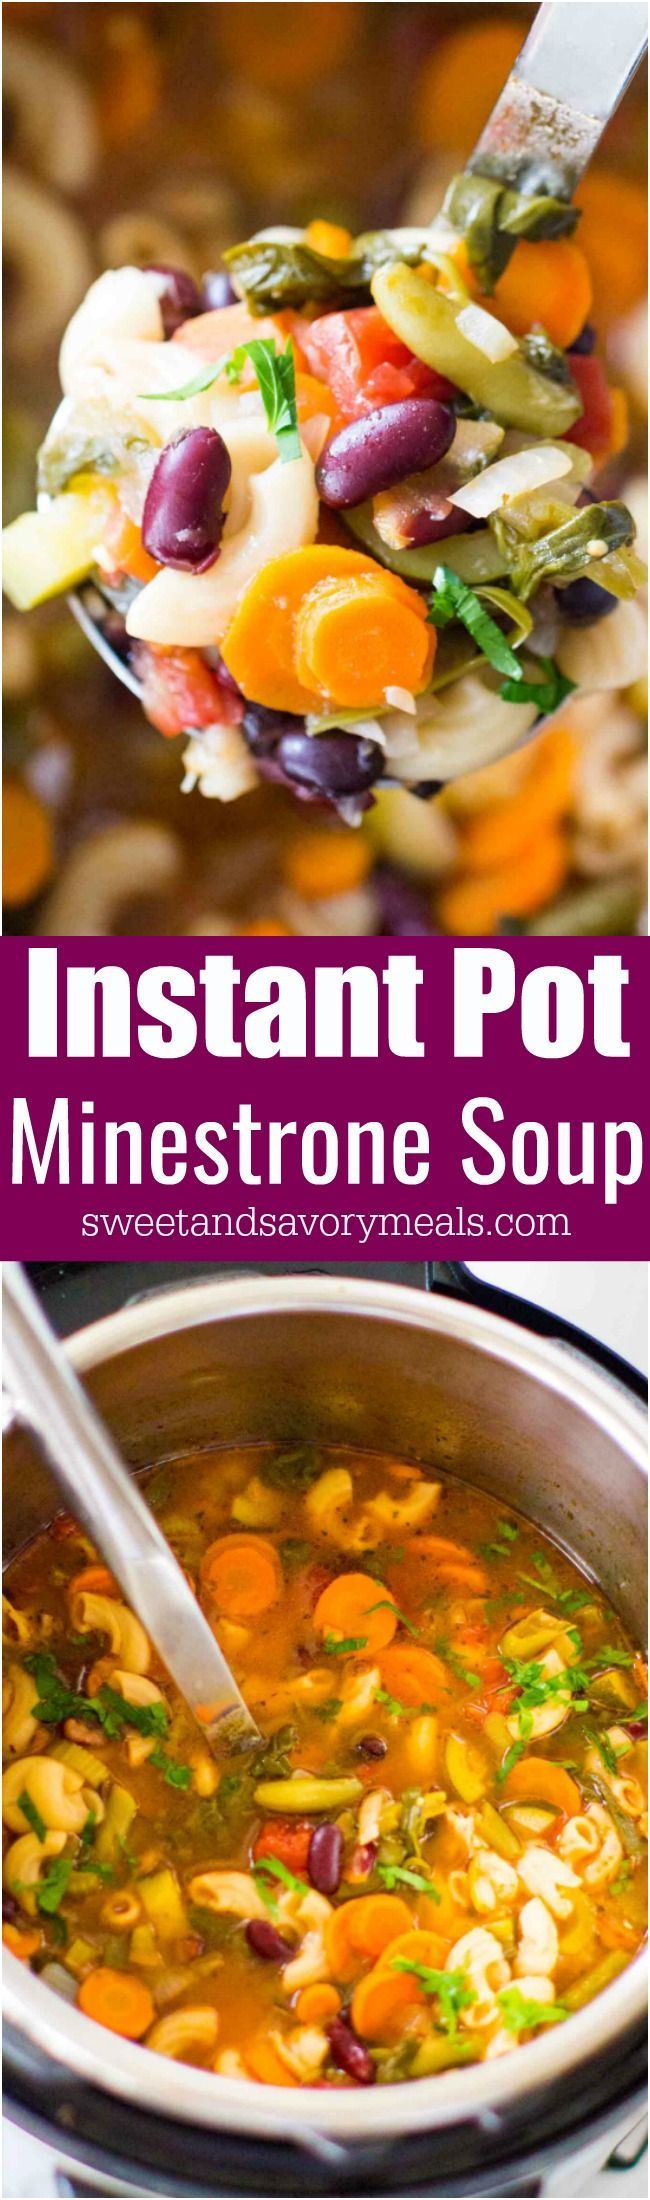 Best Instant Pot Minestrone Soup is delightfully good, tasty and healthy! Packed with so many hearty veggies and beans you can have a few bowls guilt free. #soup #minestrone #InstantPot